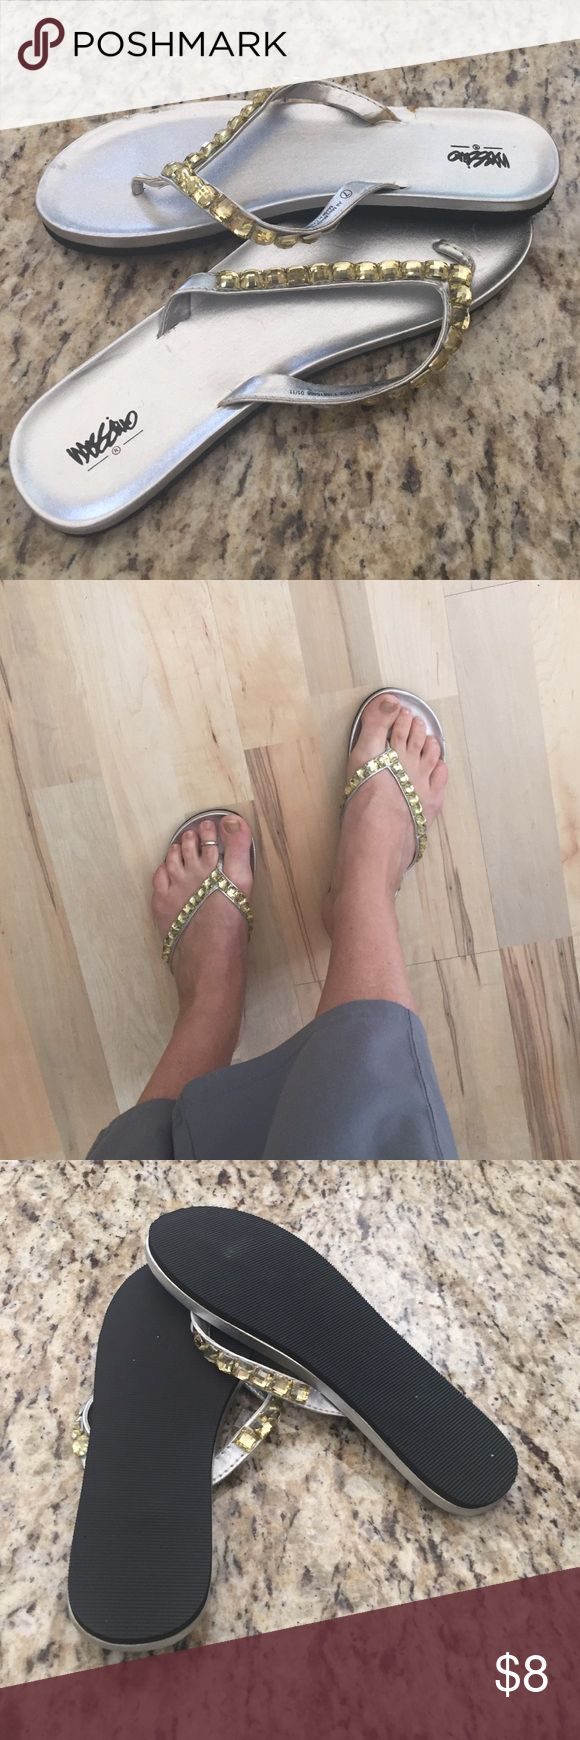 Gold jewel & silver flip flops Cute silver flip flop sandal with gold/yellow tone embellishment. This is a reposh..they are just a little snug on me. 😕 I'm usually a 7.5 but sometimes 7 flops fit me but these are a little snug on me. Size 7. Mossimo Supply Co. Shoes Sandals